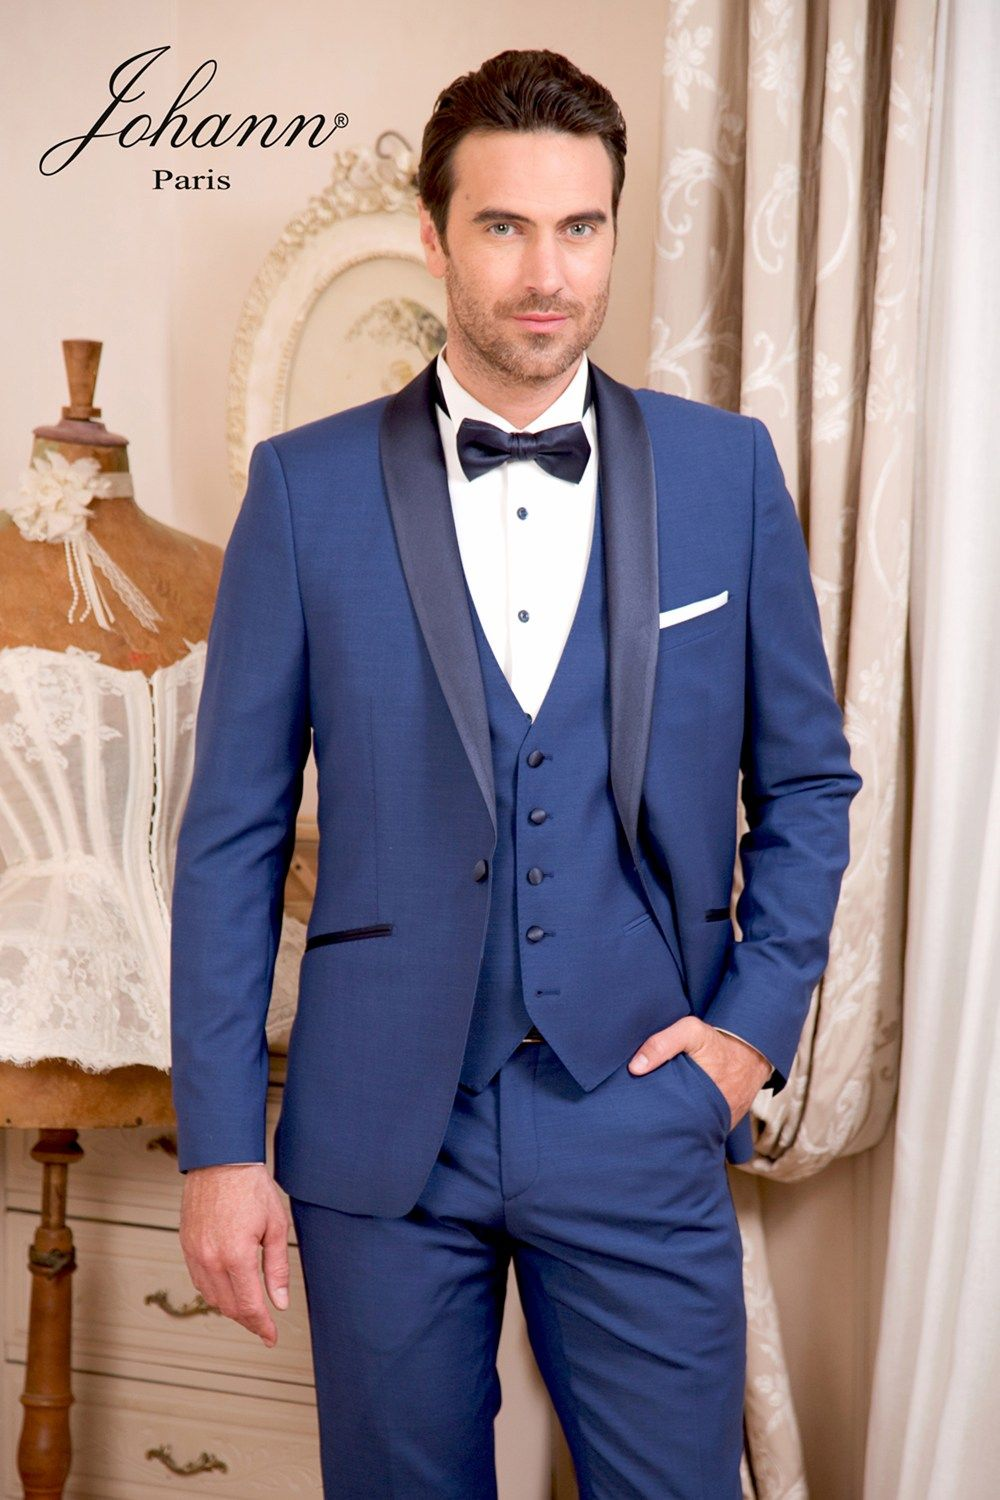 johann smoking de mariage bleu roi avec gilet en 2019. Black Bedroom Furniture Sets. Home Design Ideas